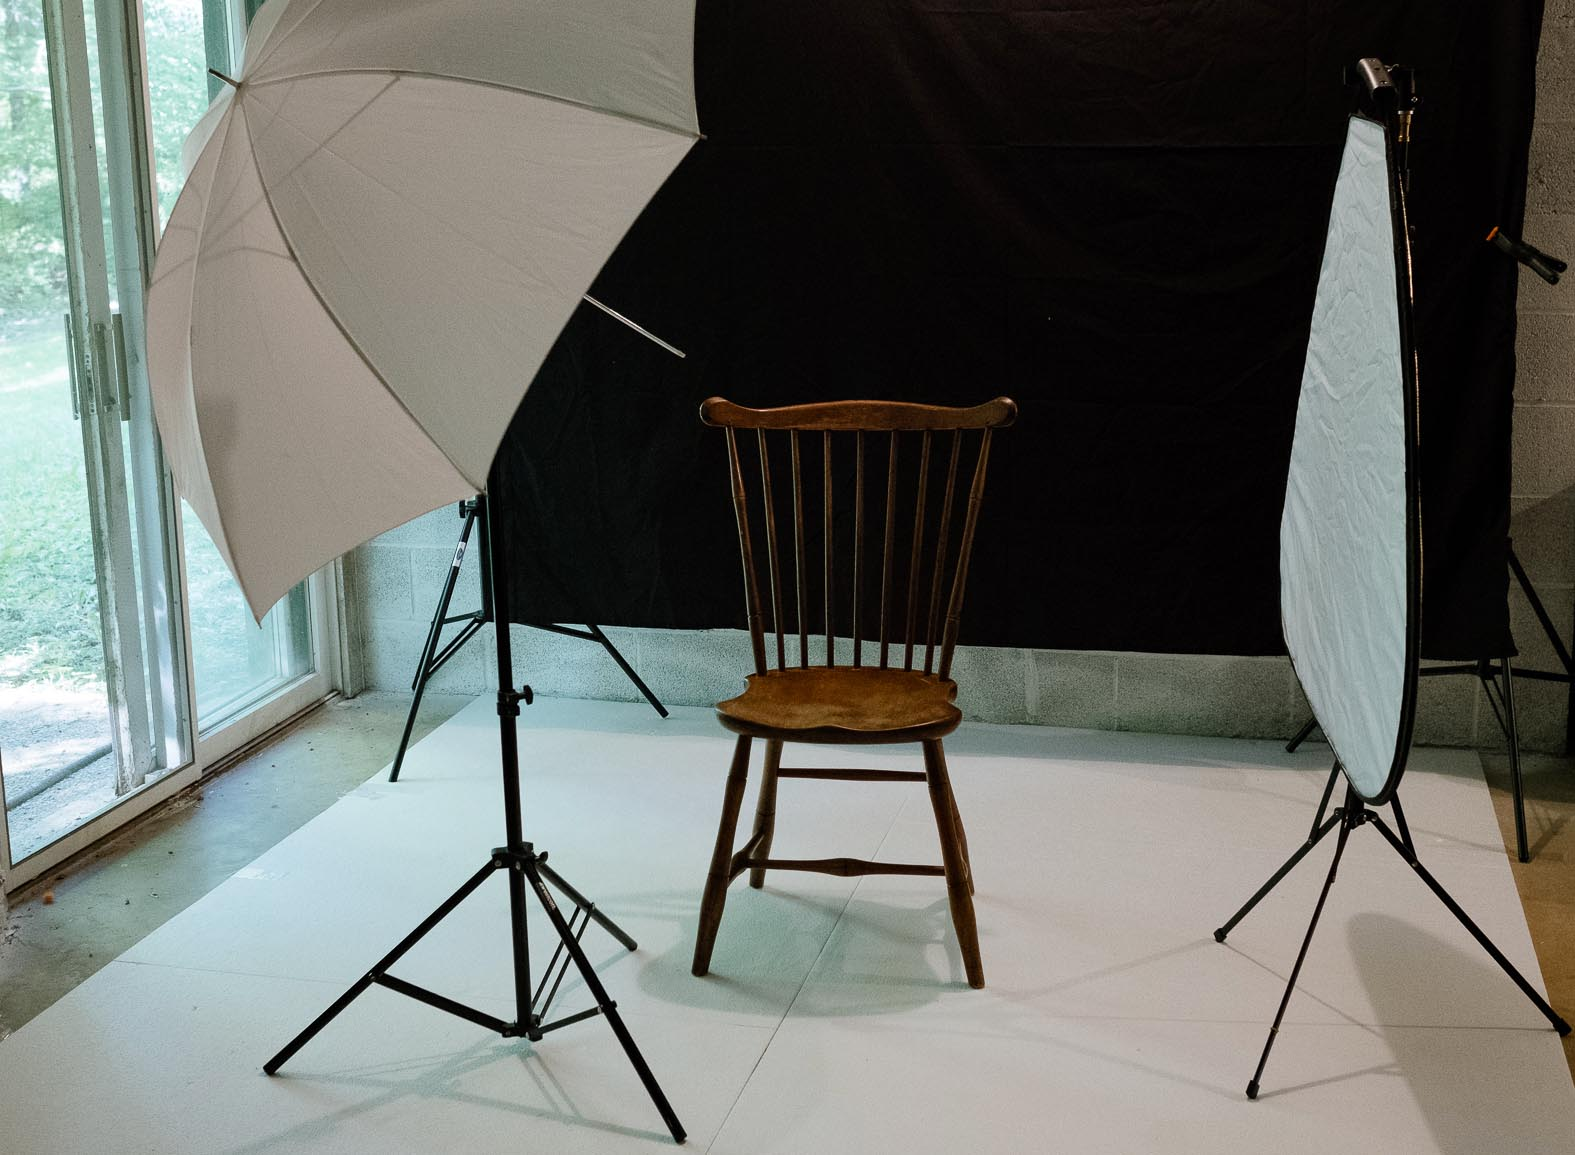 Basement photo studio setup